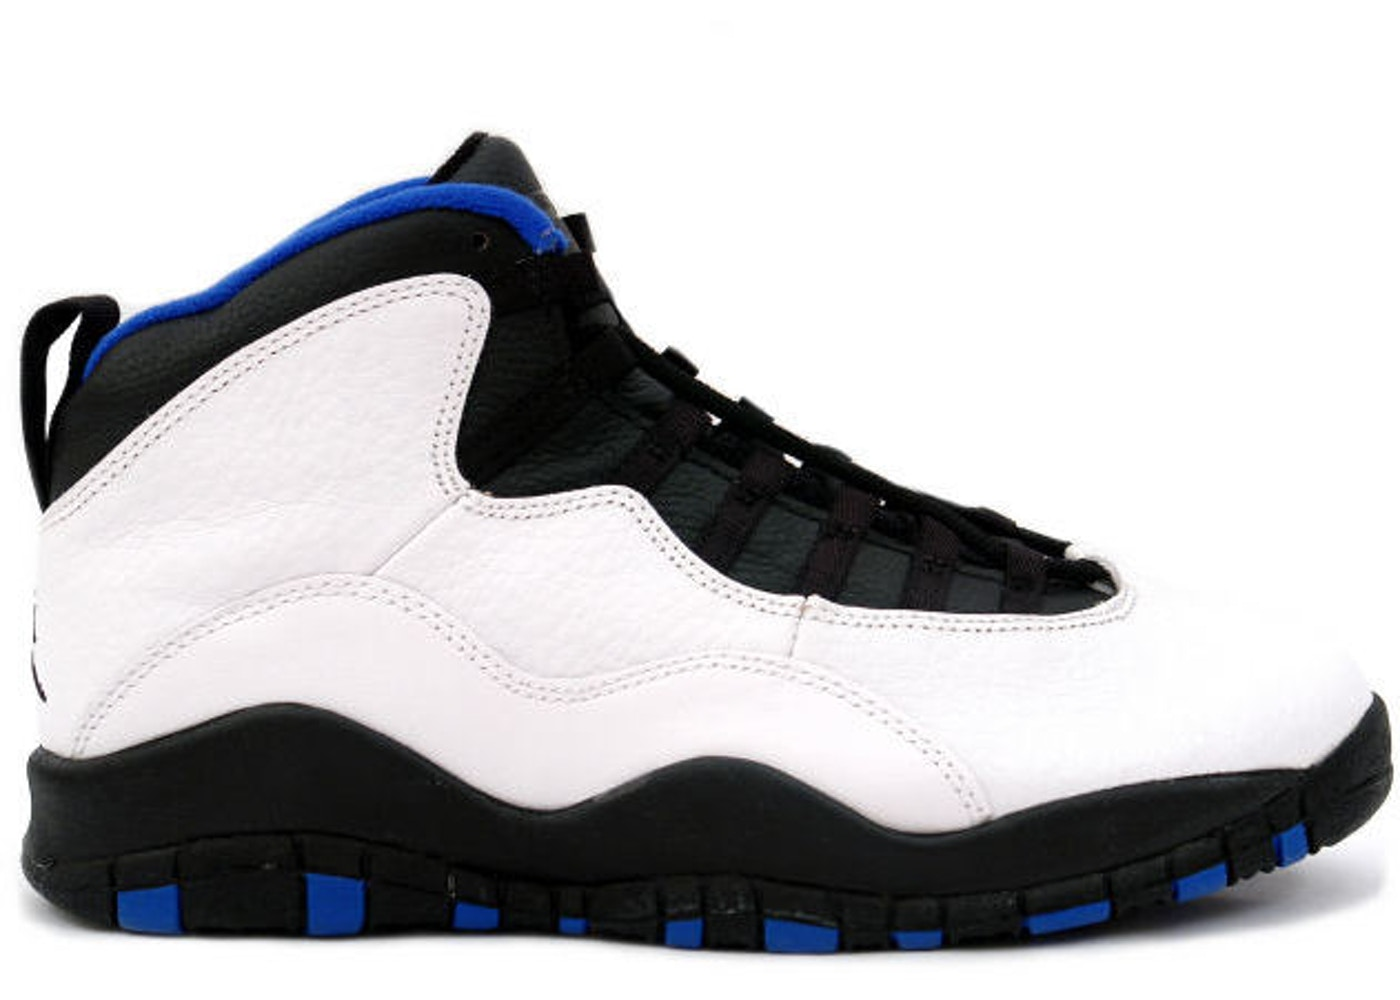 dbbc9863945 Jordan 10 OG New York Knicks - 130209-103